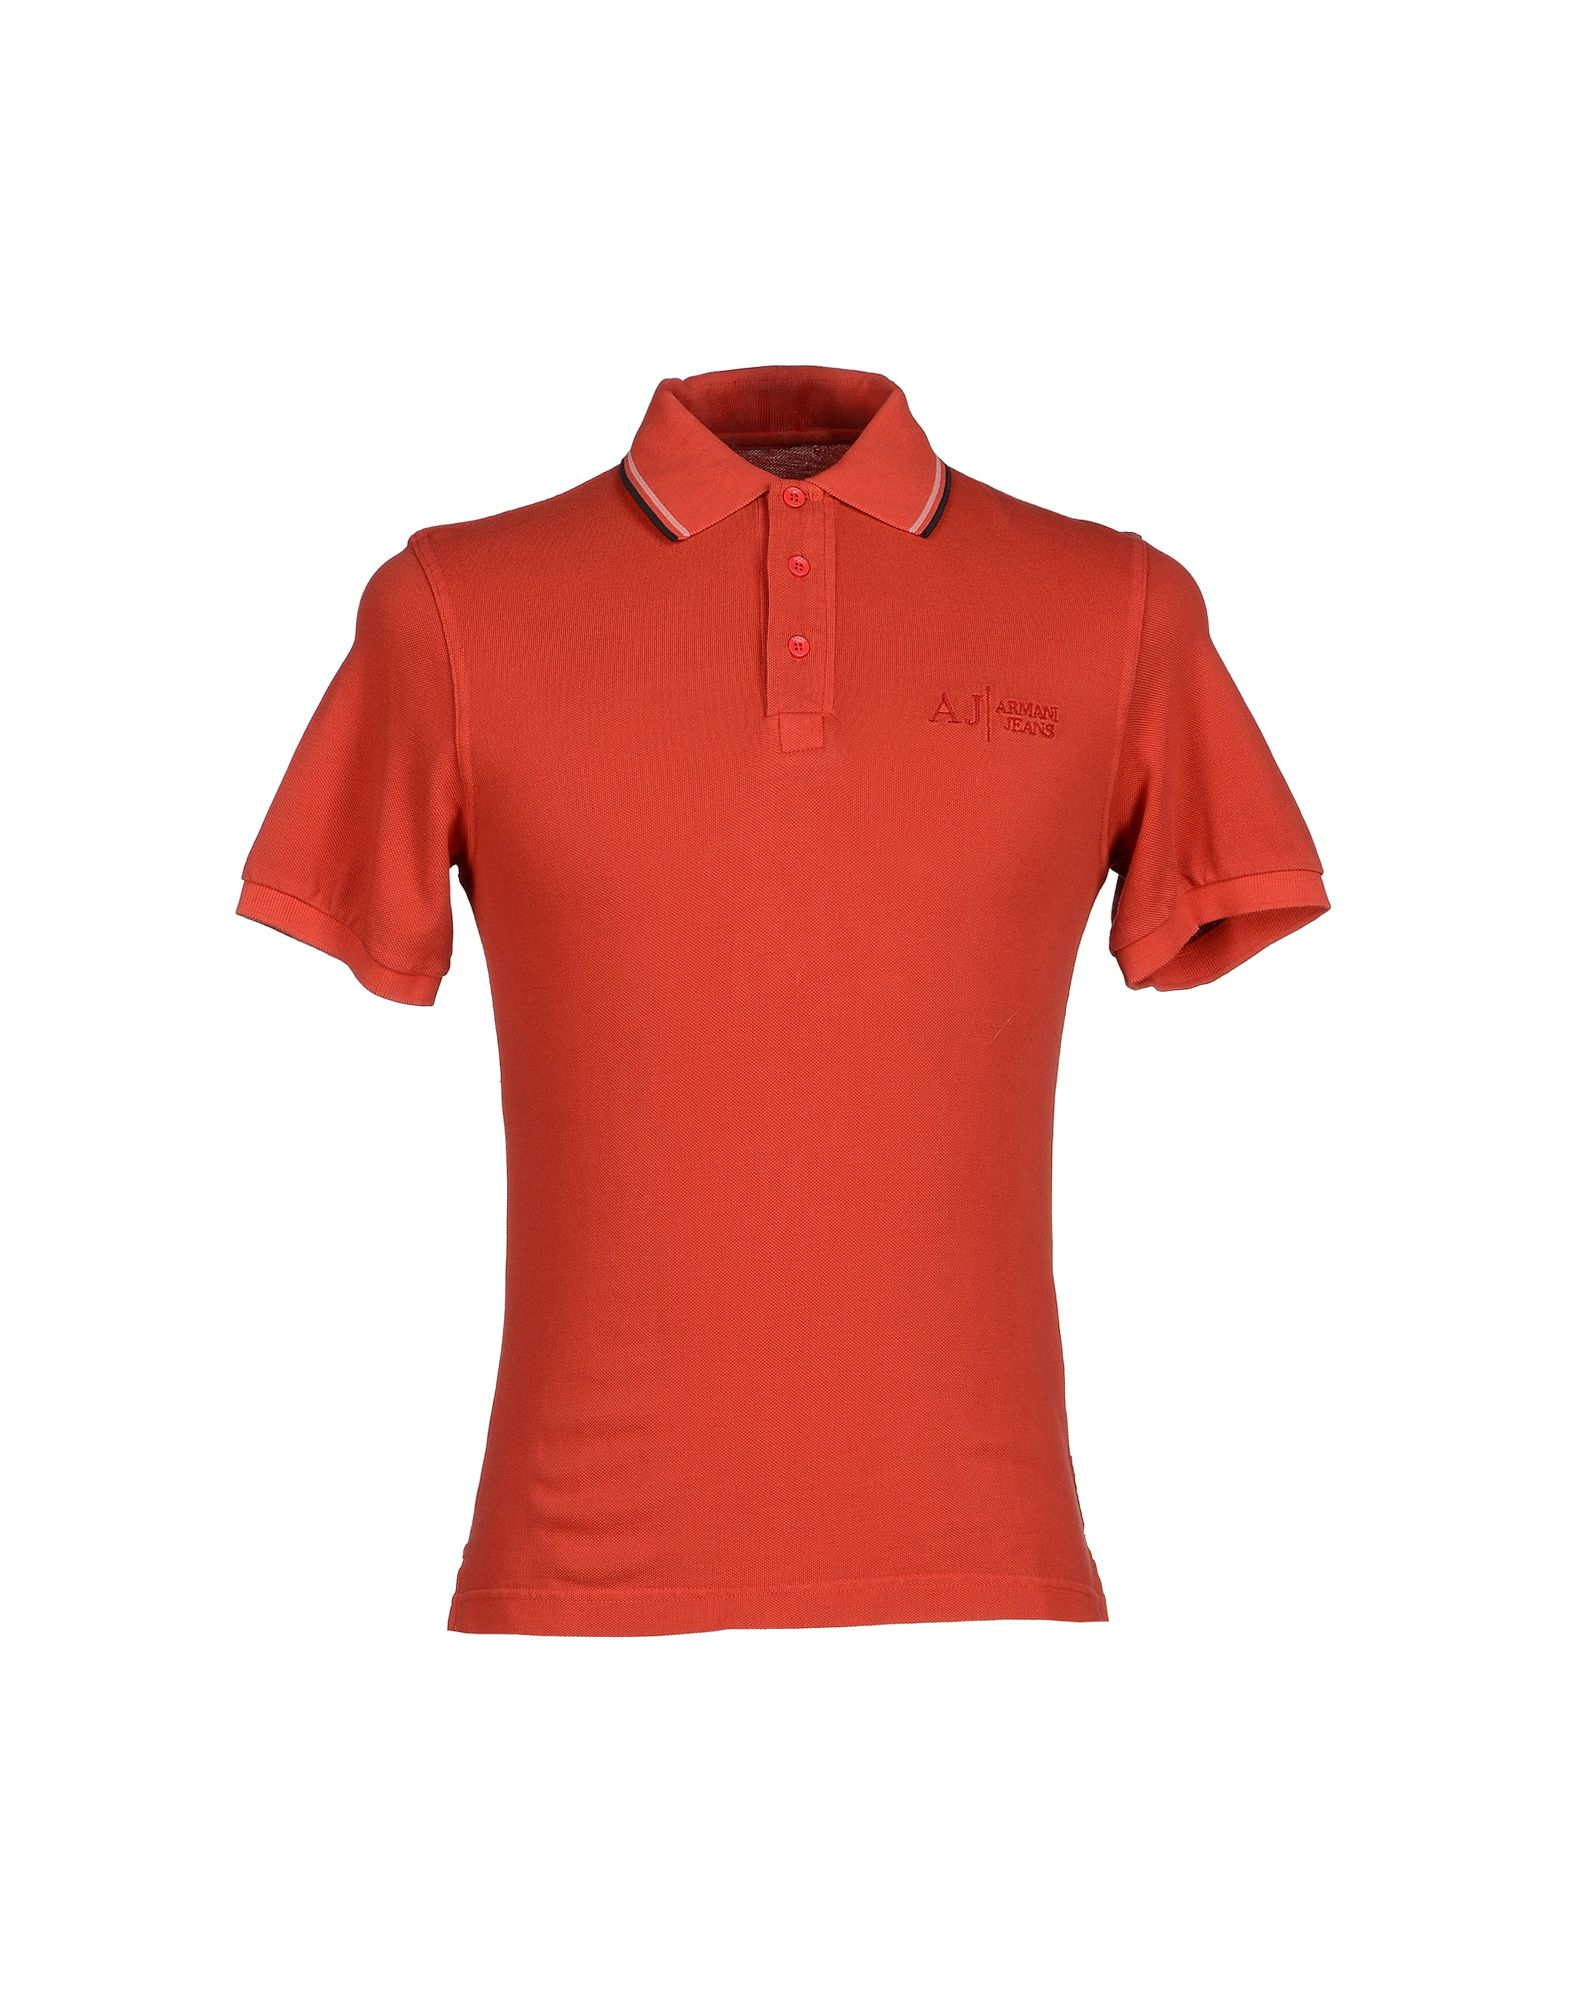 Lyst armani jeans polo shirt in red for men for Polo shirt and jeans